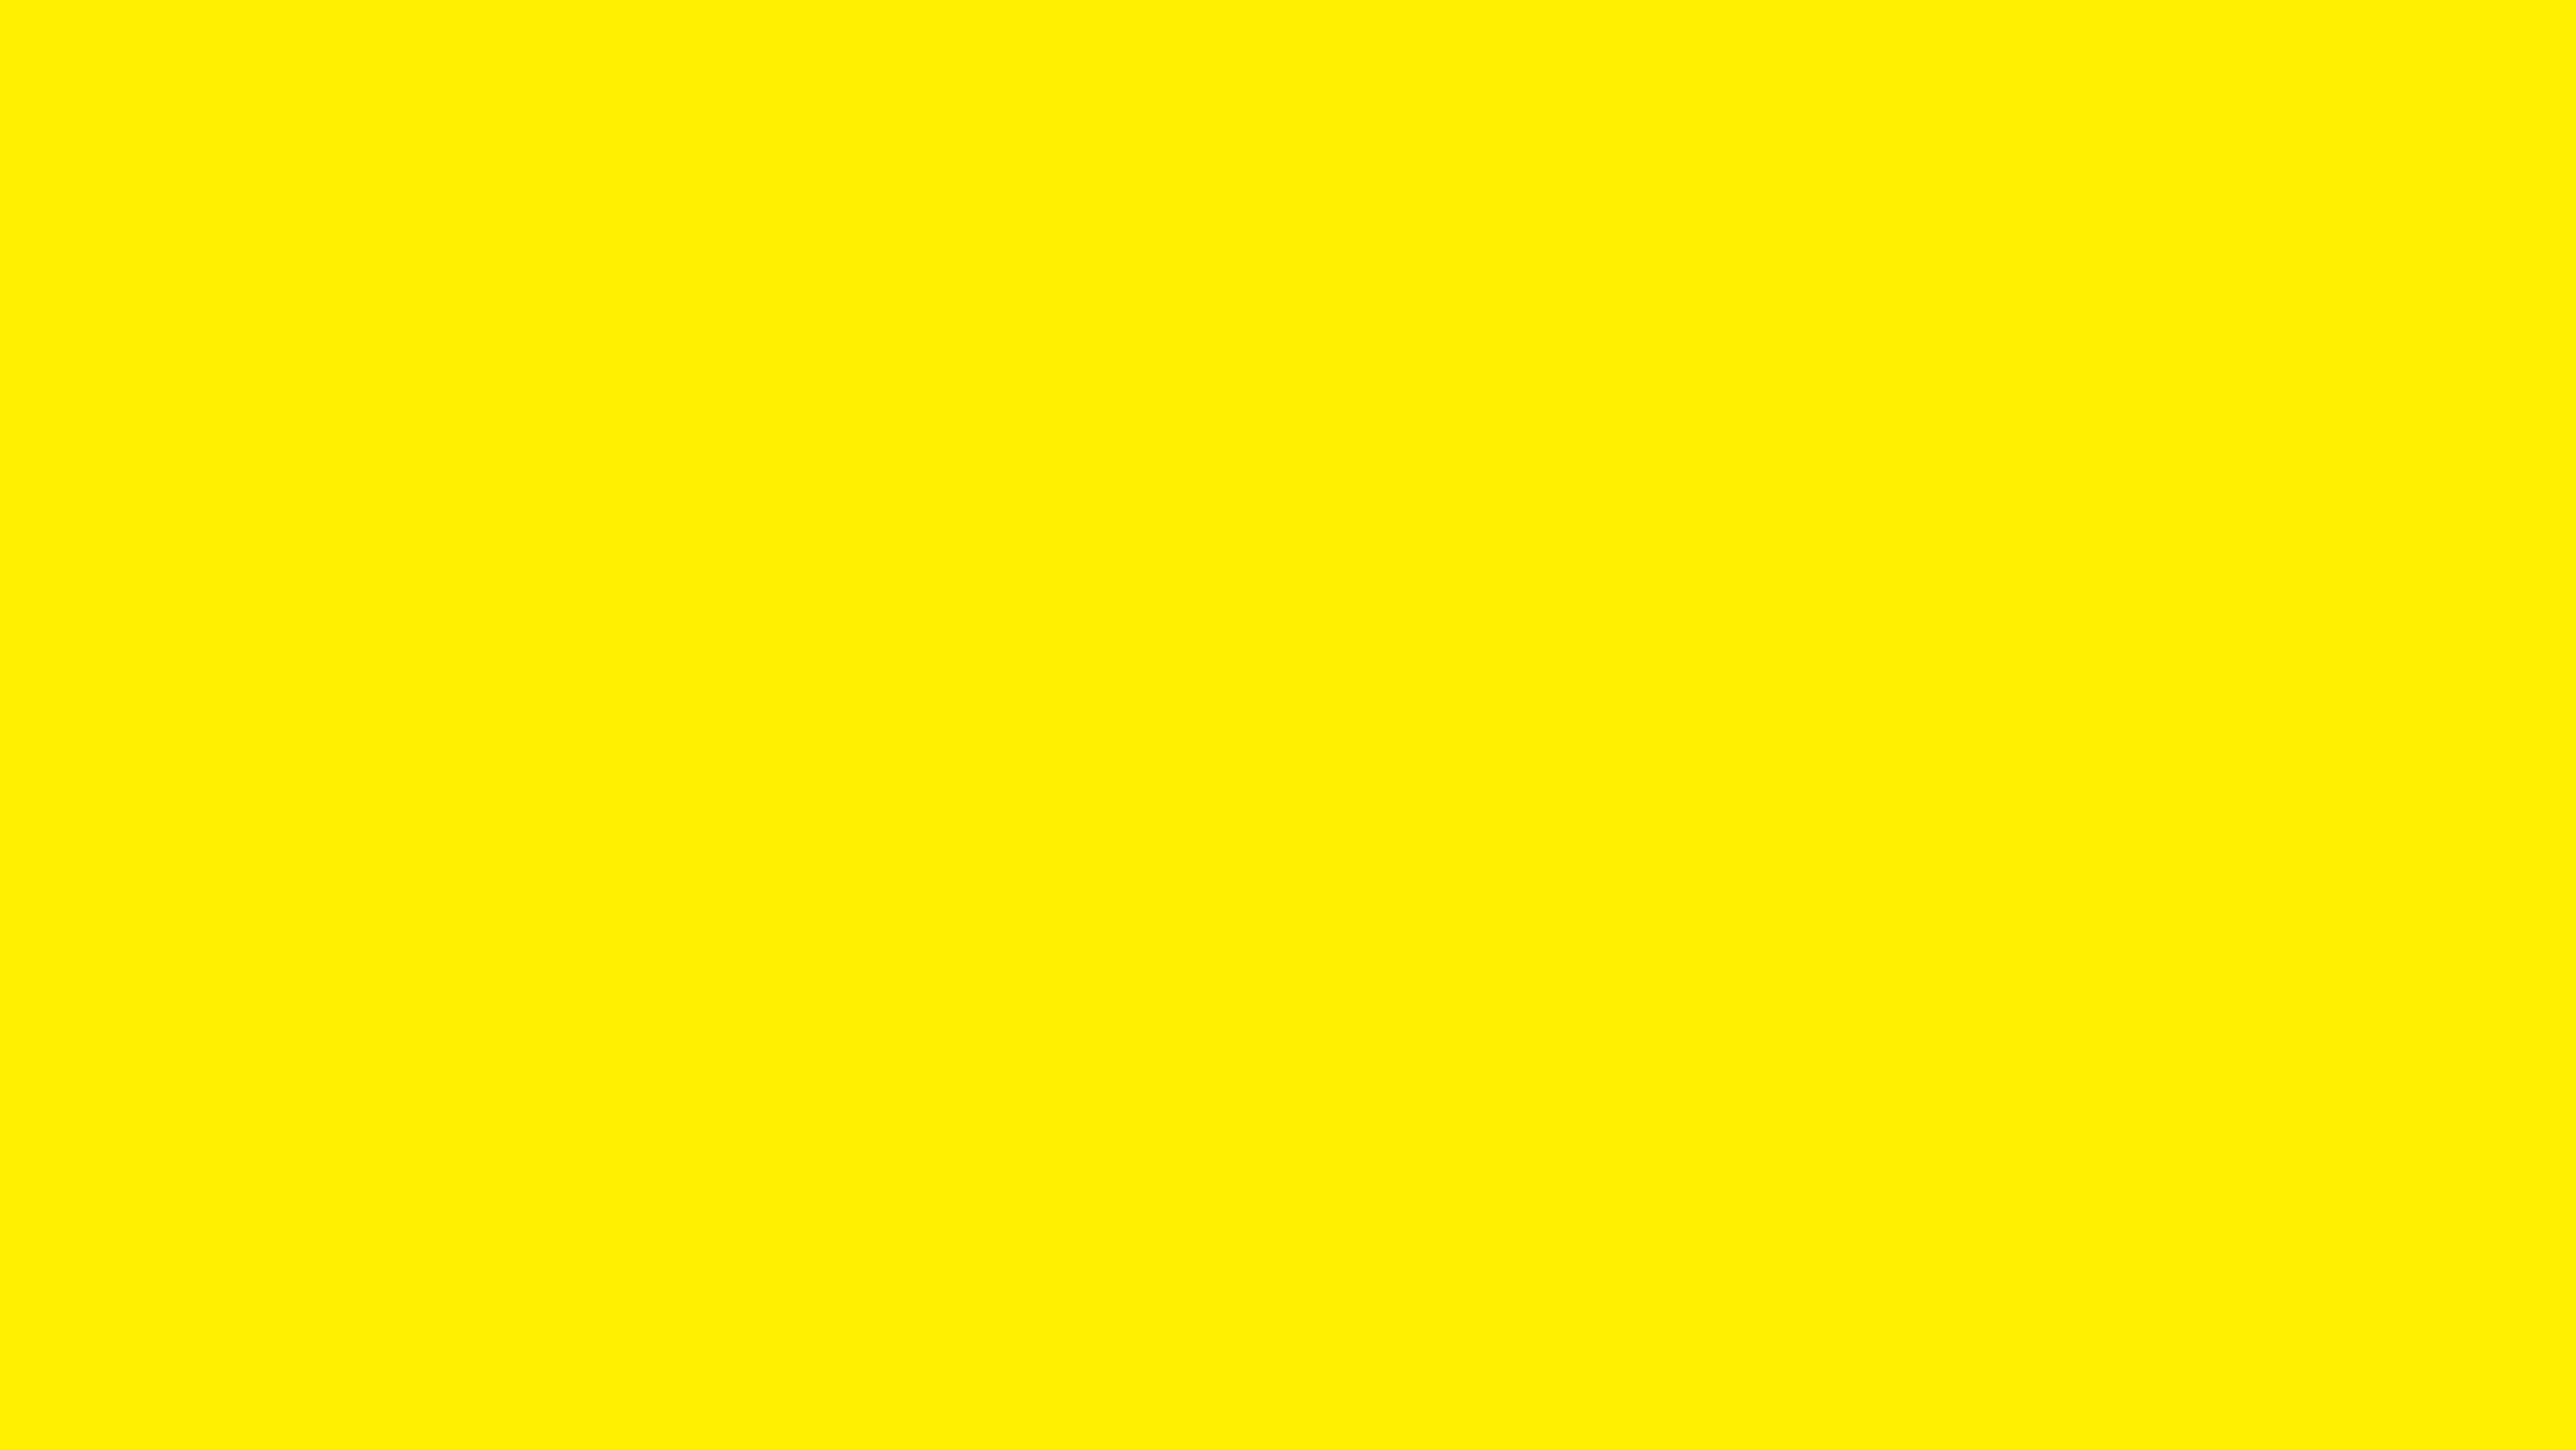 5120x2880 Canary Yellow Solid Color Background